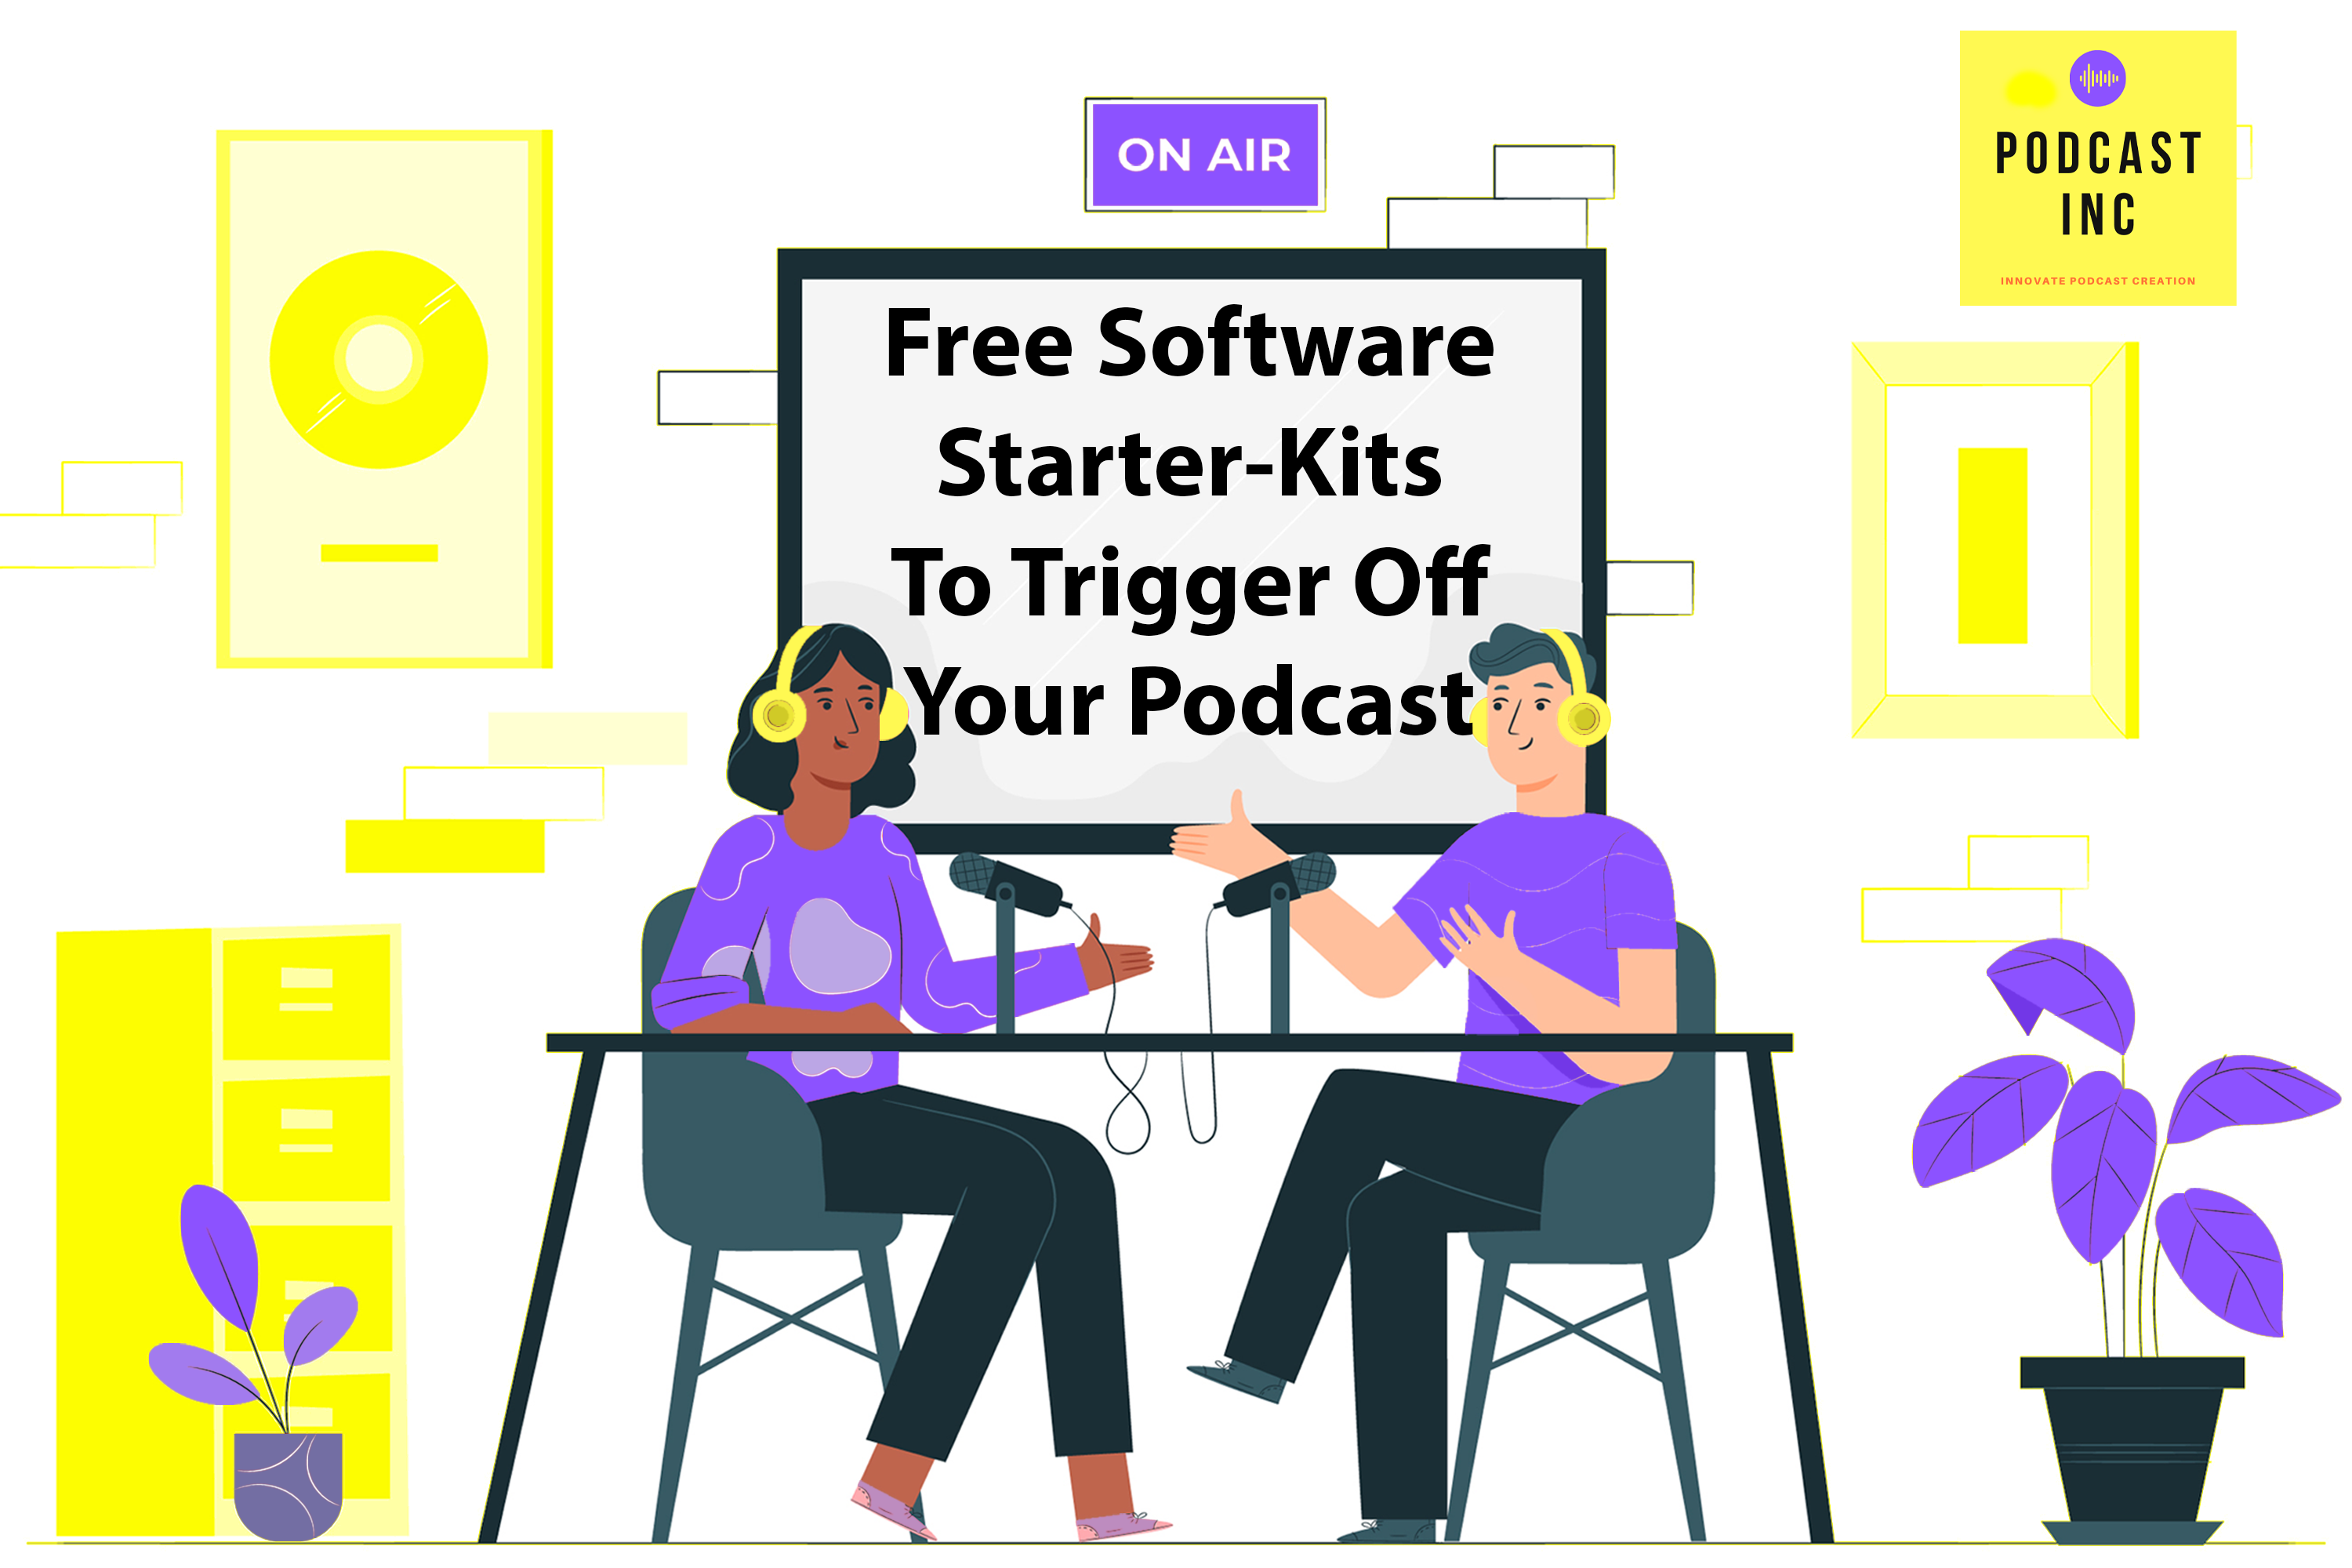 Free Software Starter-Kits to Trigger Off Your Podcast